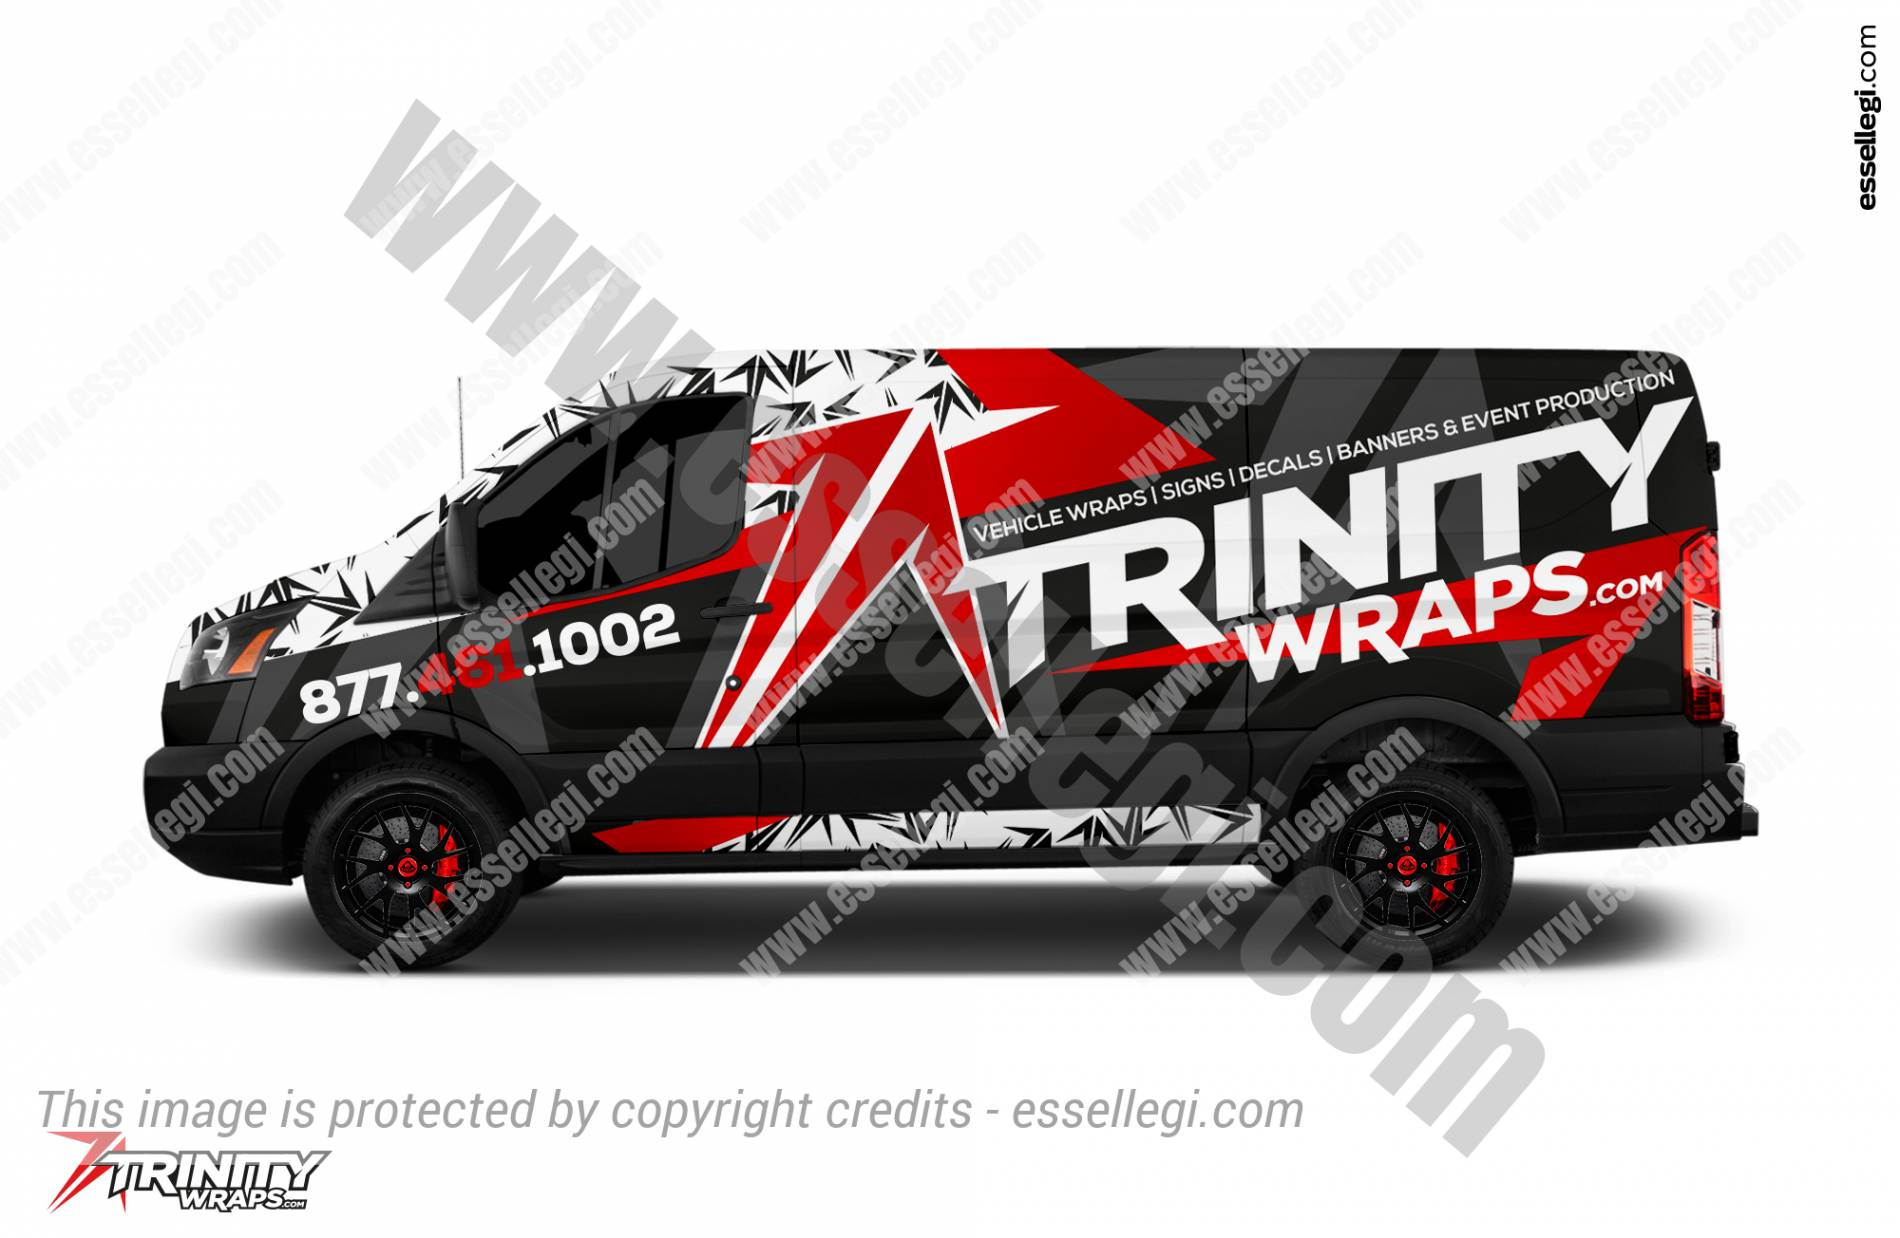 Ford Transit 250 | Van Wrap Design by Essellegi. Van Signs, Van Signage, Van Wrapping, Van Signwriting, Van Wrap Designer, Signs for Van, Van Logo, Van Graphic by Essellegi.